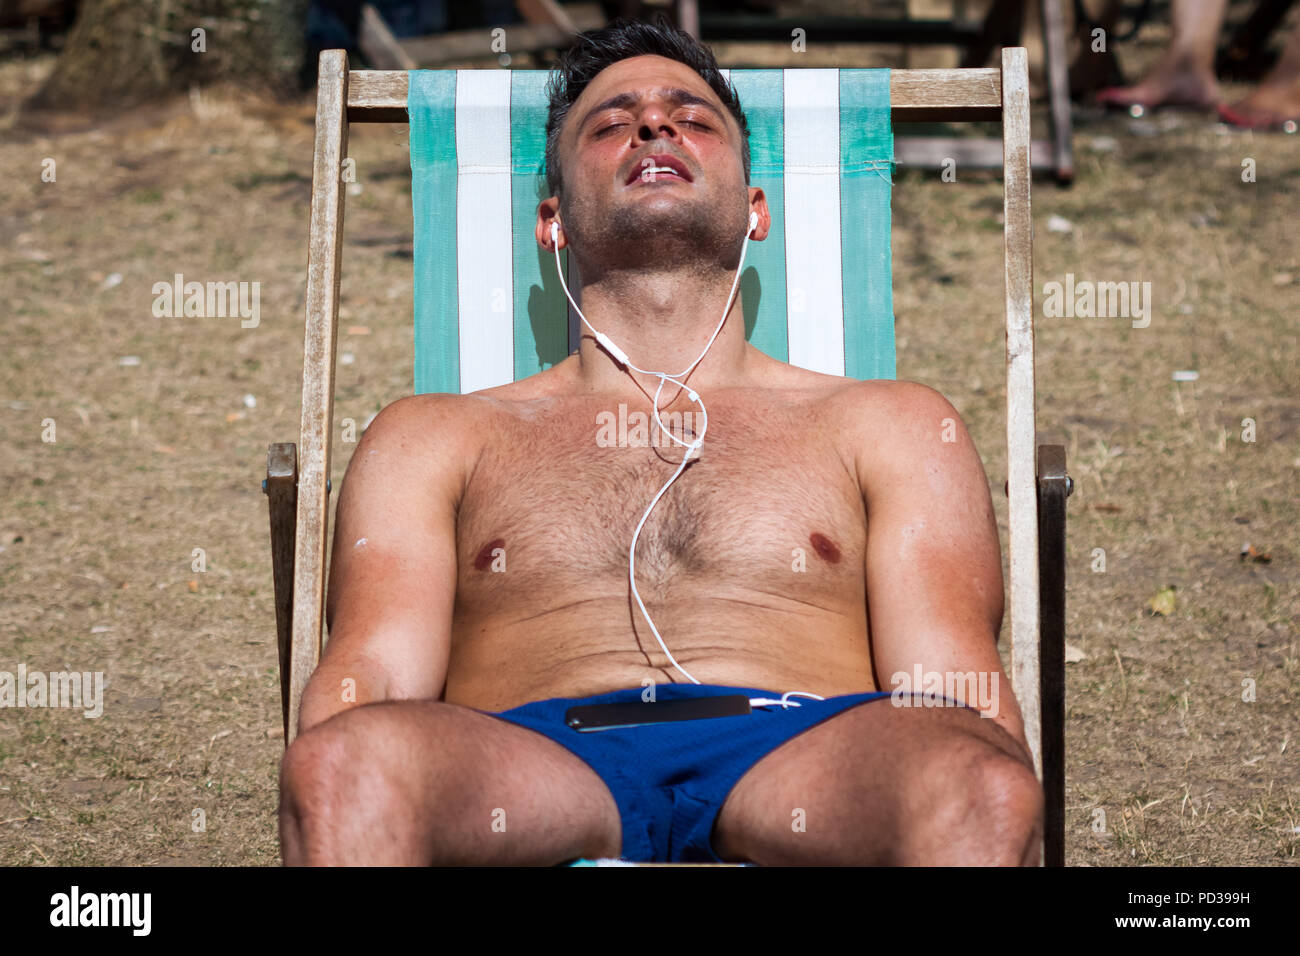 London, UK. 6th August, 2018. UK Weather: Locals and tourists relax and enjoy another day of summer heatwave with temperatures exceeding 30C in Hyde Park. Credit: Guy Corbishley/Alamy Live News Stock Photo